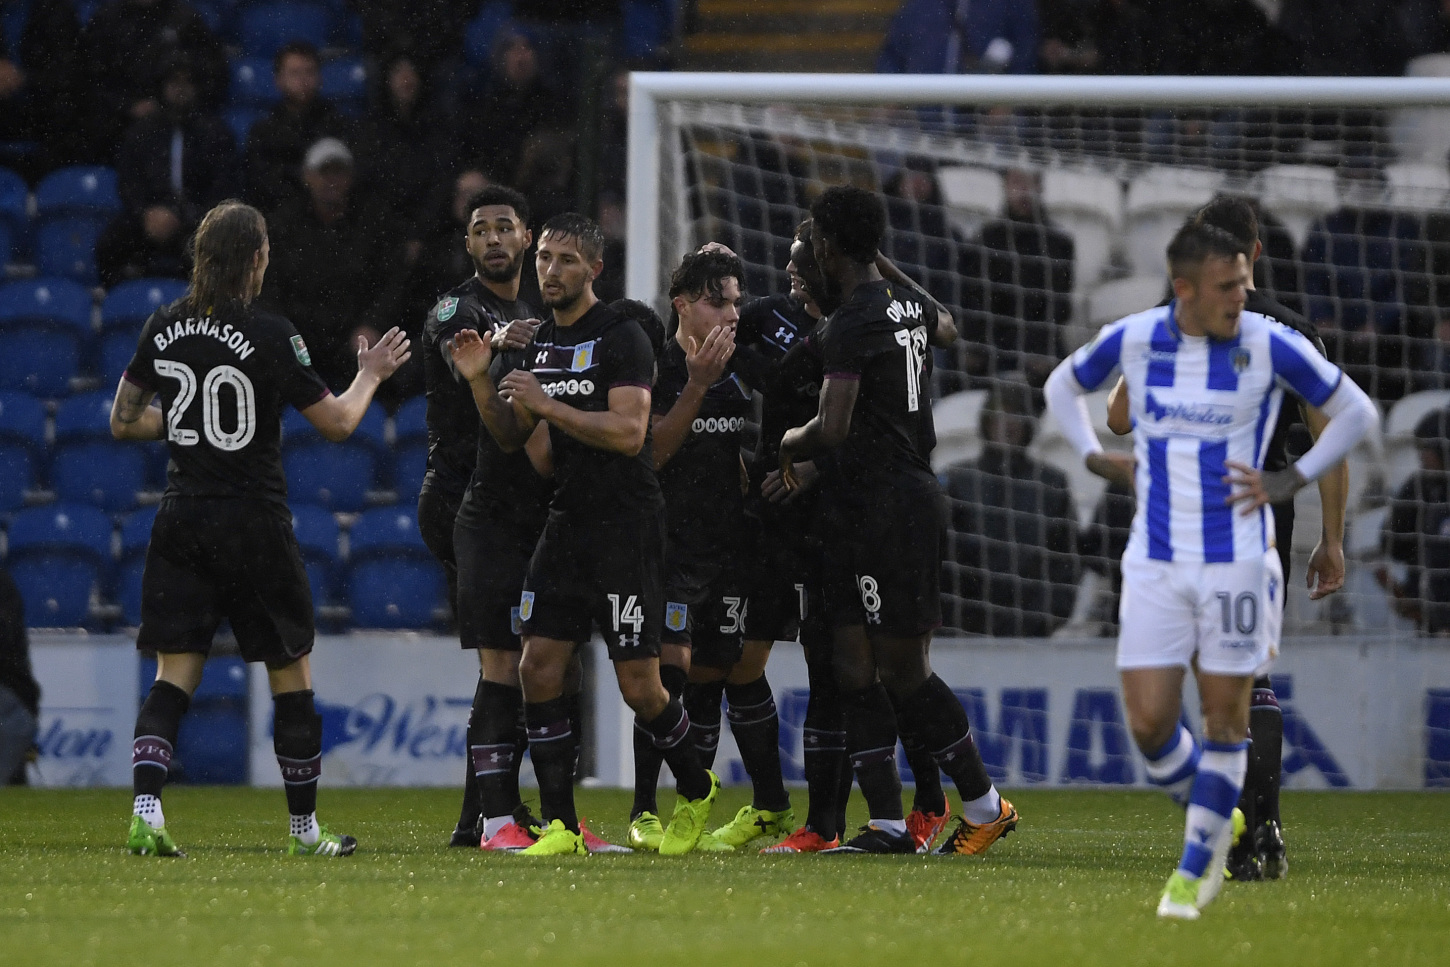 Colchester United v Aston Villa - Review